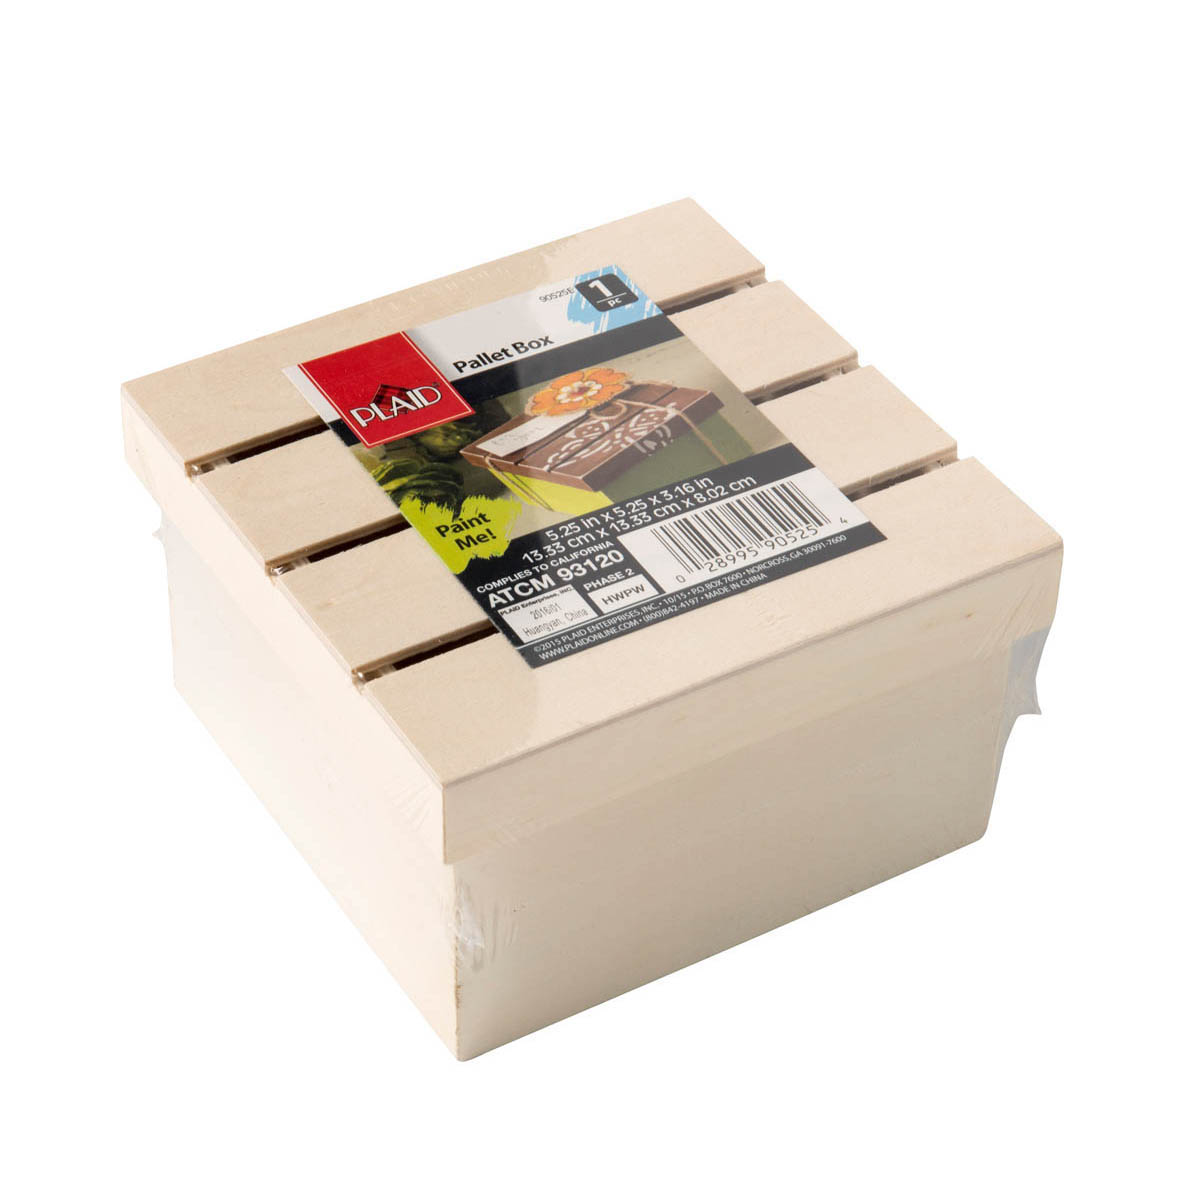 Plaid ® Wood Surfaces - Pallet Box - 90525E